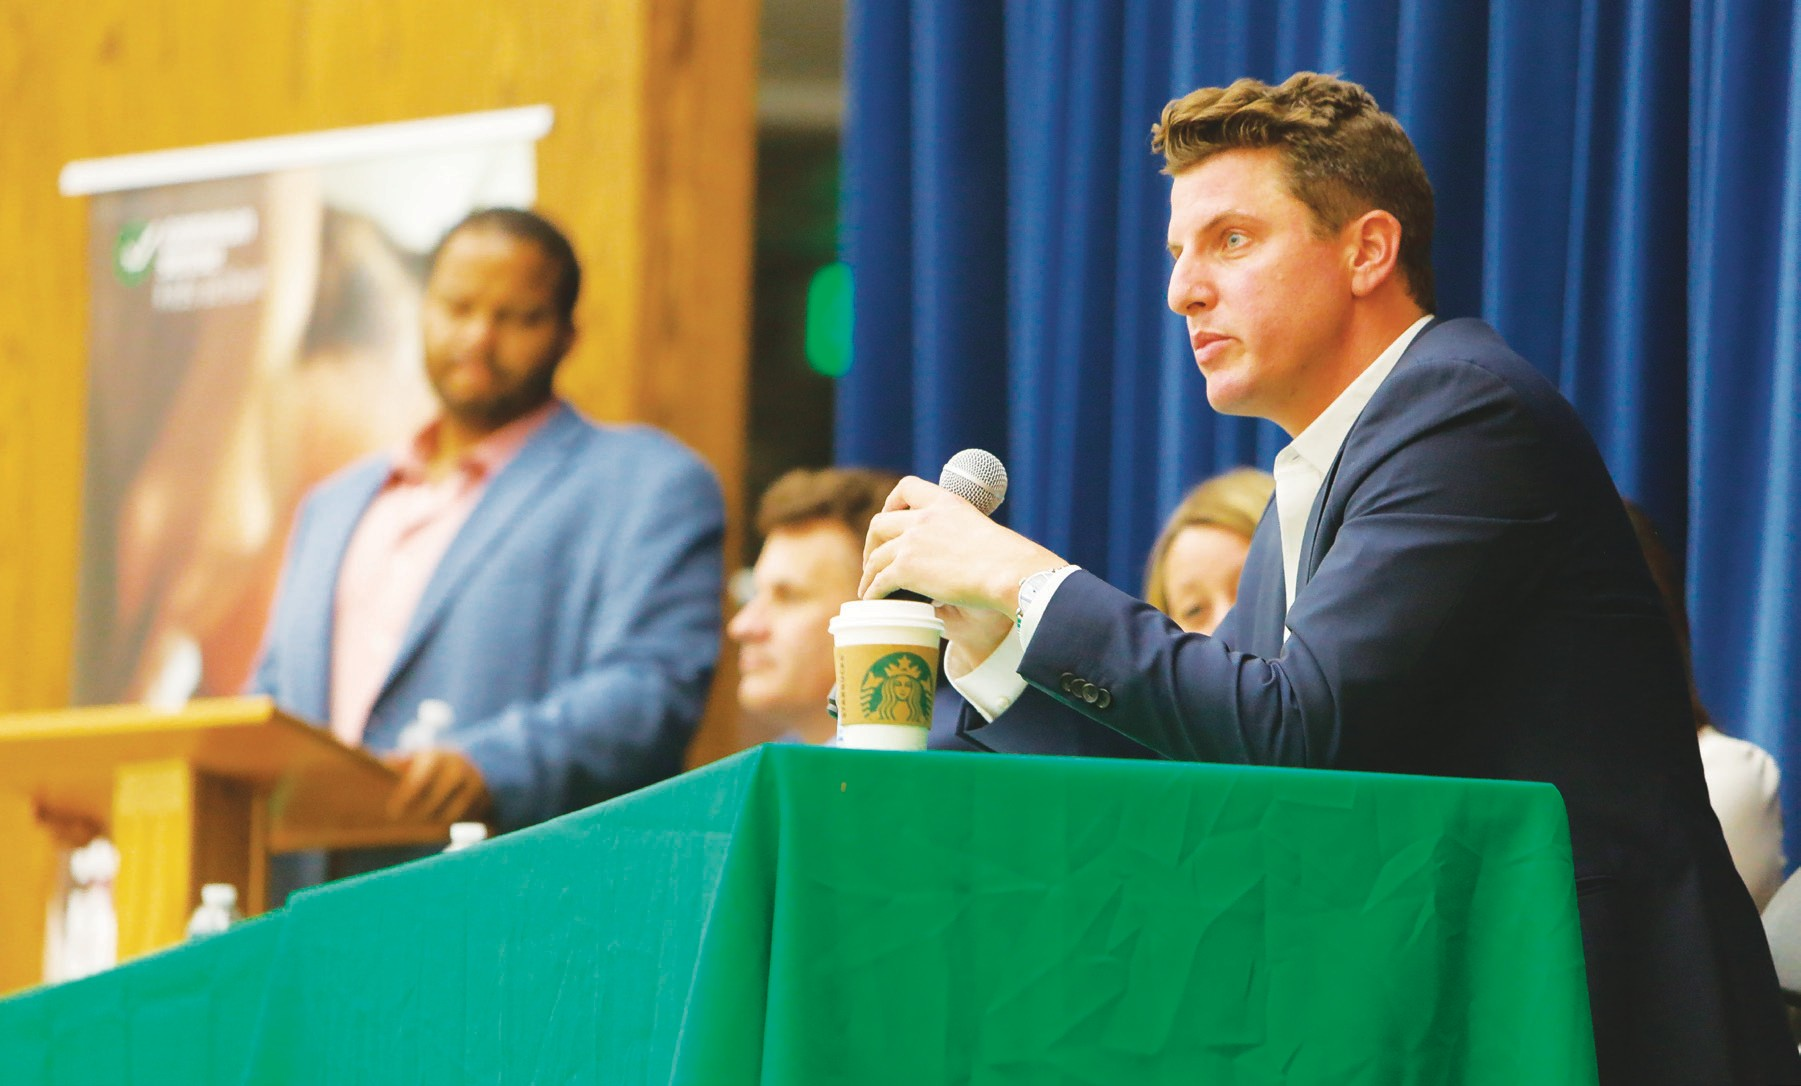 COMPUTER SAVVY—Sen. Henry Stern speaks at a panel discussion about the relationship between analog parents their digital children Sept. 19 at Sumac Elementary School in Agoura Hills. BOBBY CURTIS/Acorn Newspapers